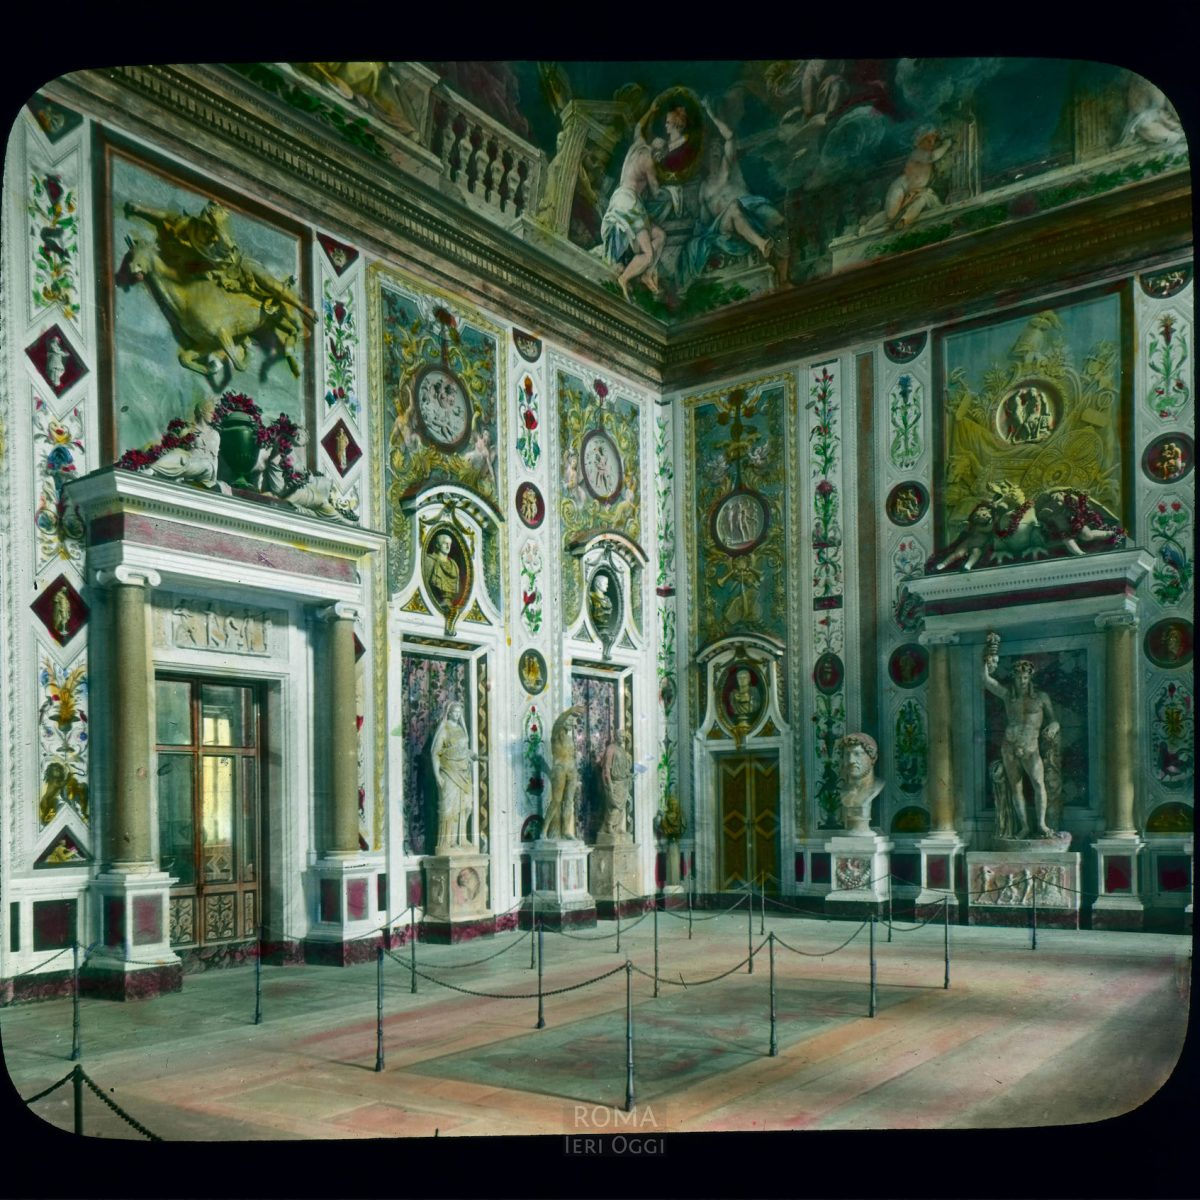 Vatican City. Apostolic Palace, Borgia Apartment: interior, grand entrance salon of the Borgia Apartment View in tinted lantern slide, ca. 1919-1938. This part of the palace was built ca. 1492-1503.